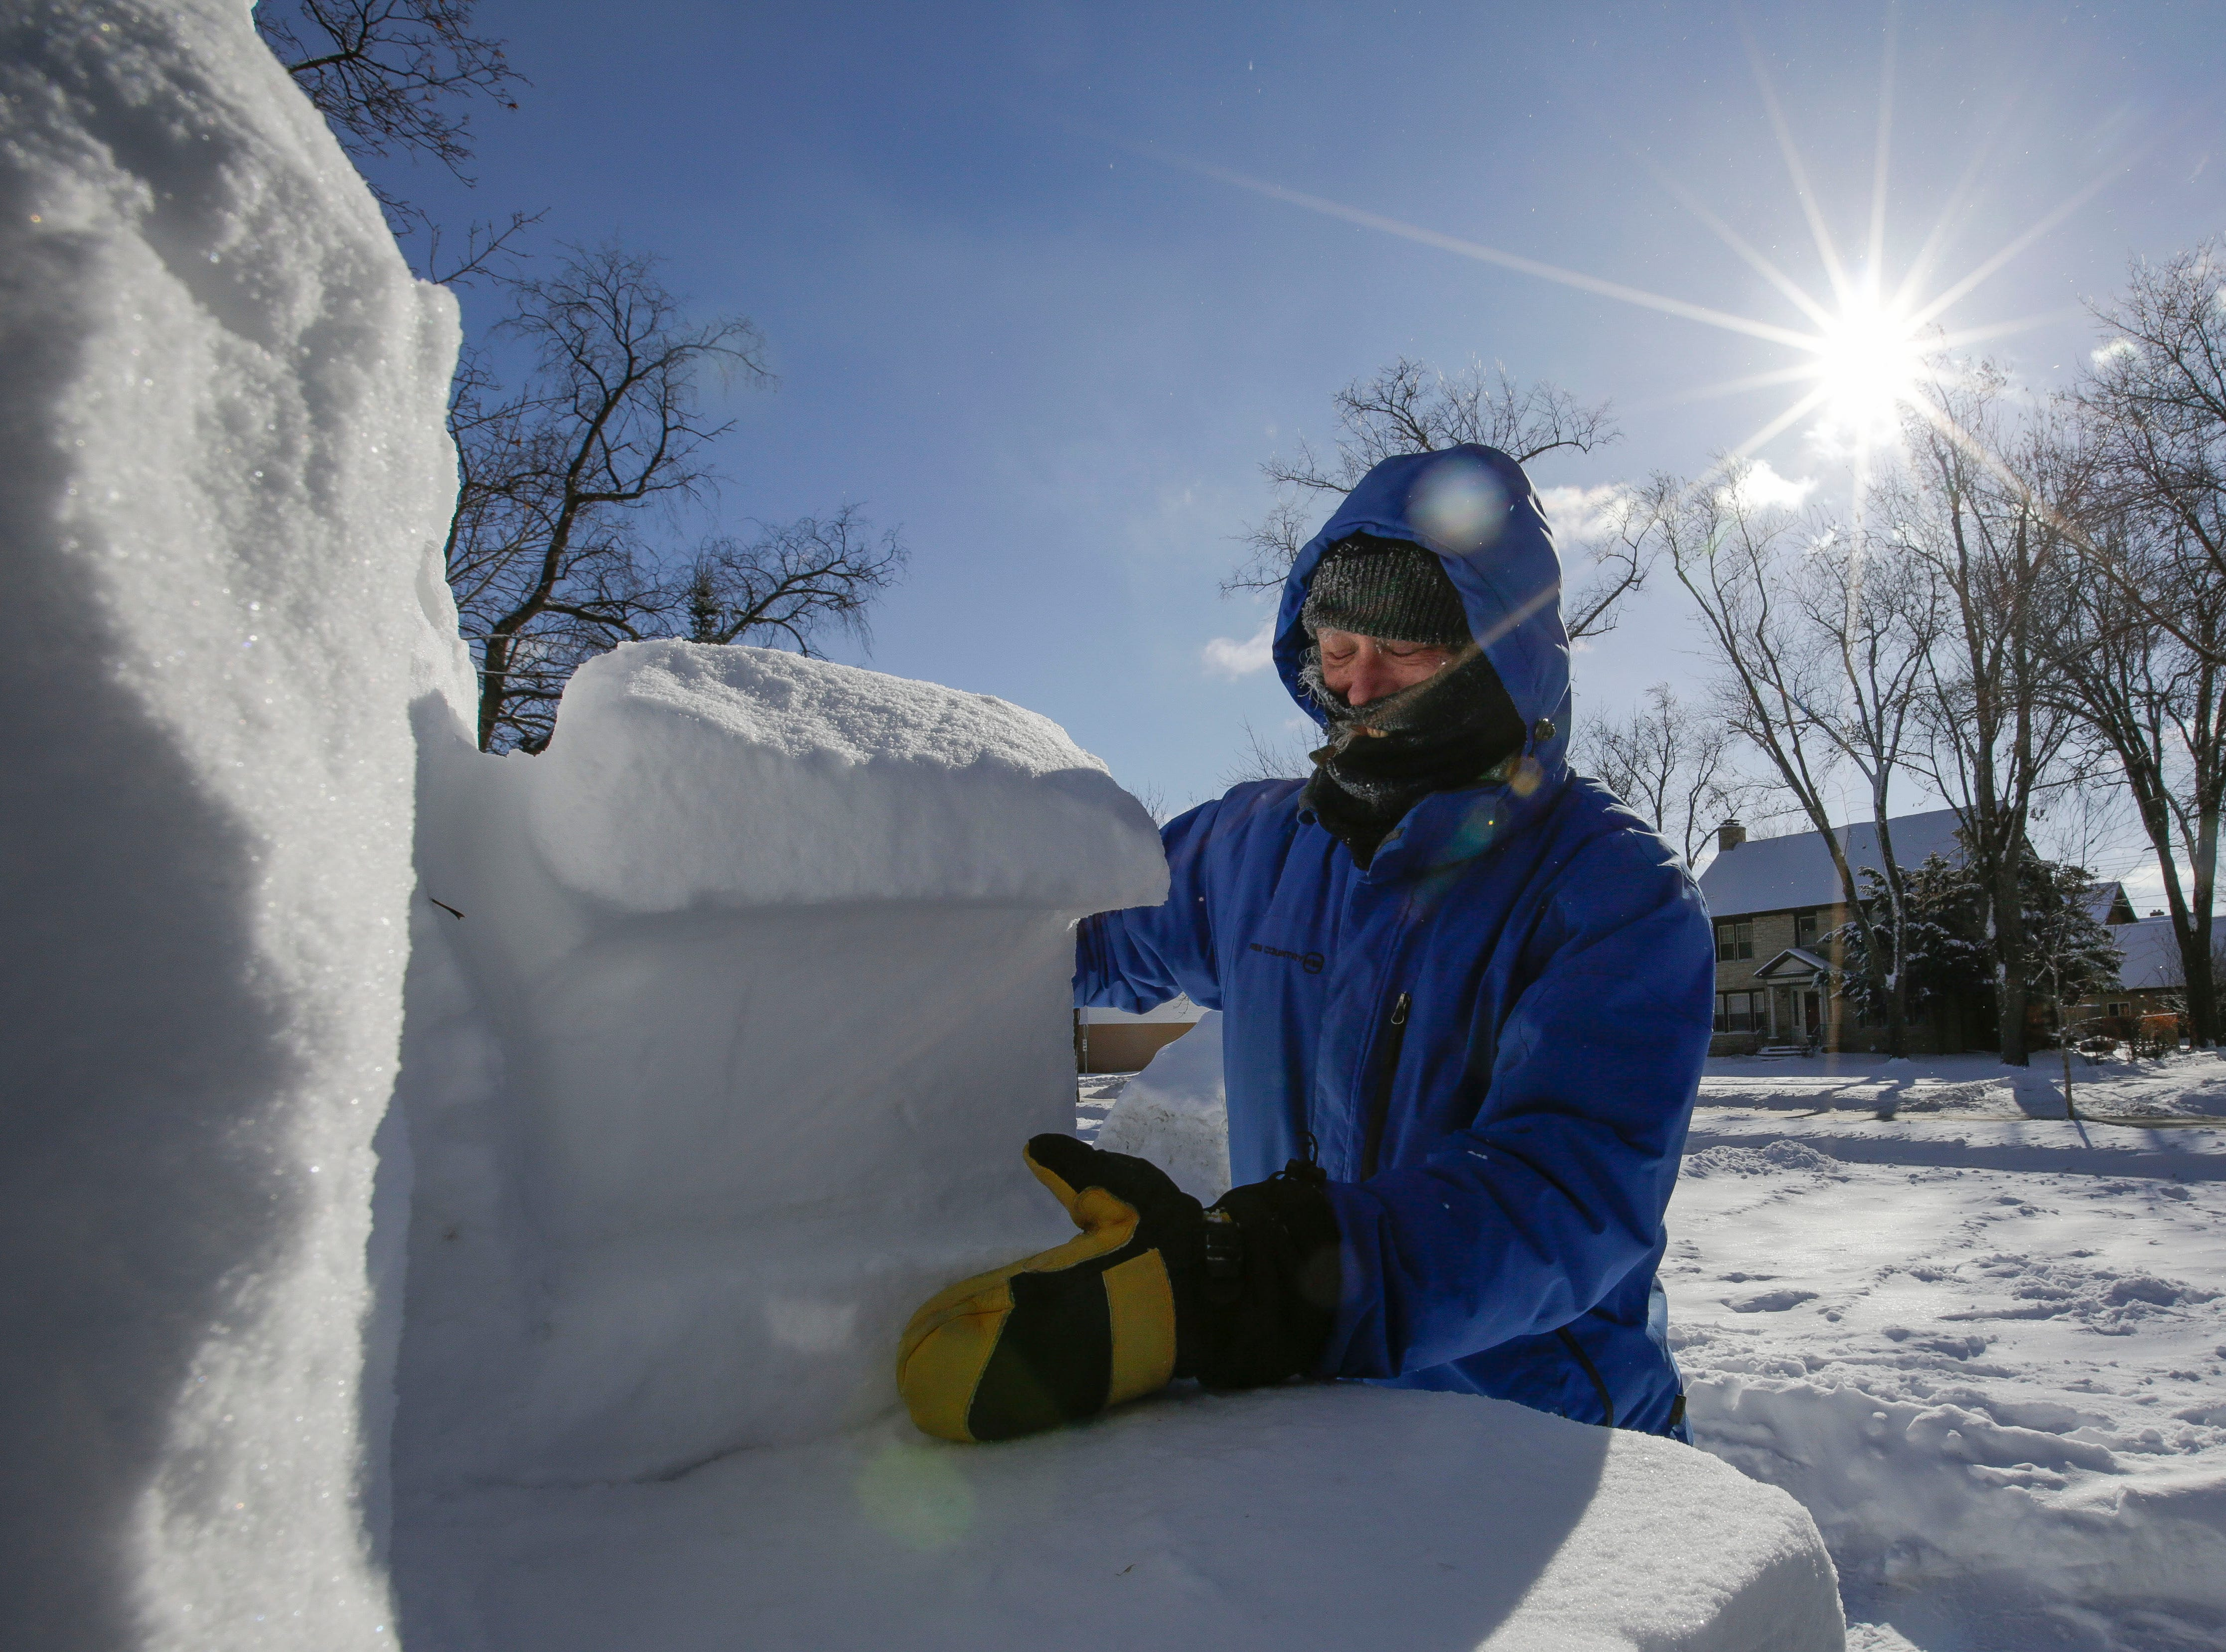 Local artist Jef Schobert brushes loose snow off of his sculpture on Friday, February 8, 2019, on the UWSP campus in Stevens Point, Wis. The sculpture is to commemorate UWSP's 125th anniversary.Tork Mason/USA TODAY NETWORK-Wisconsin